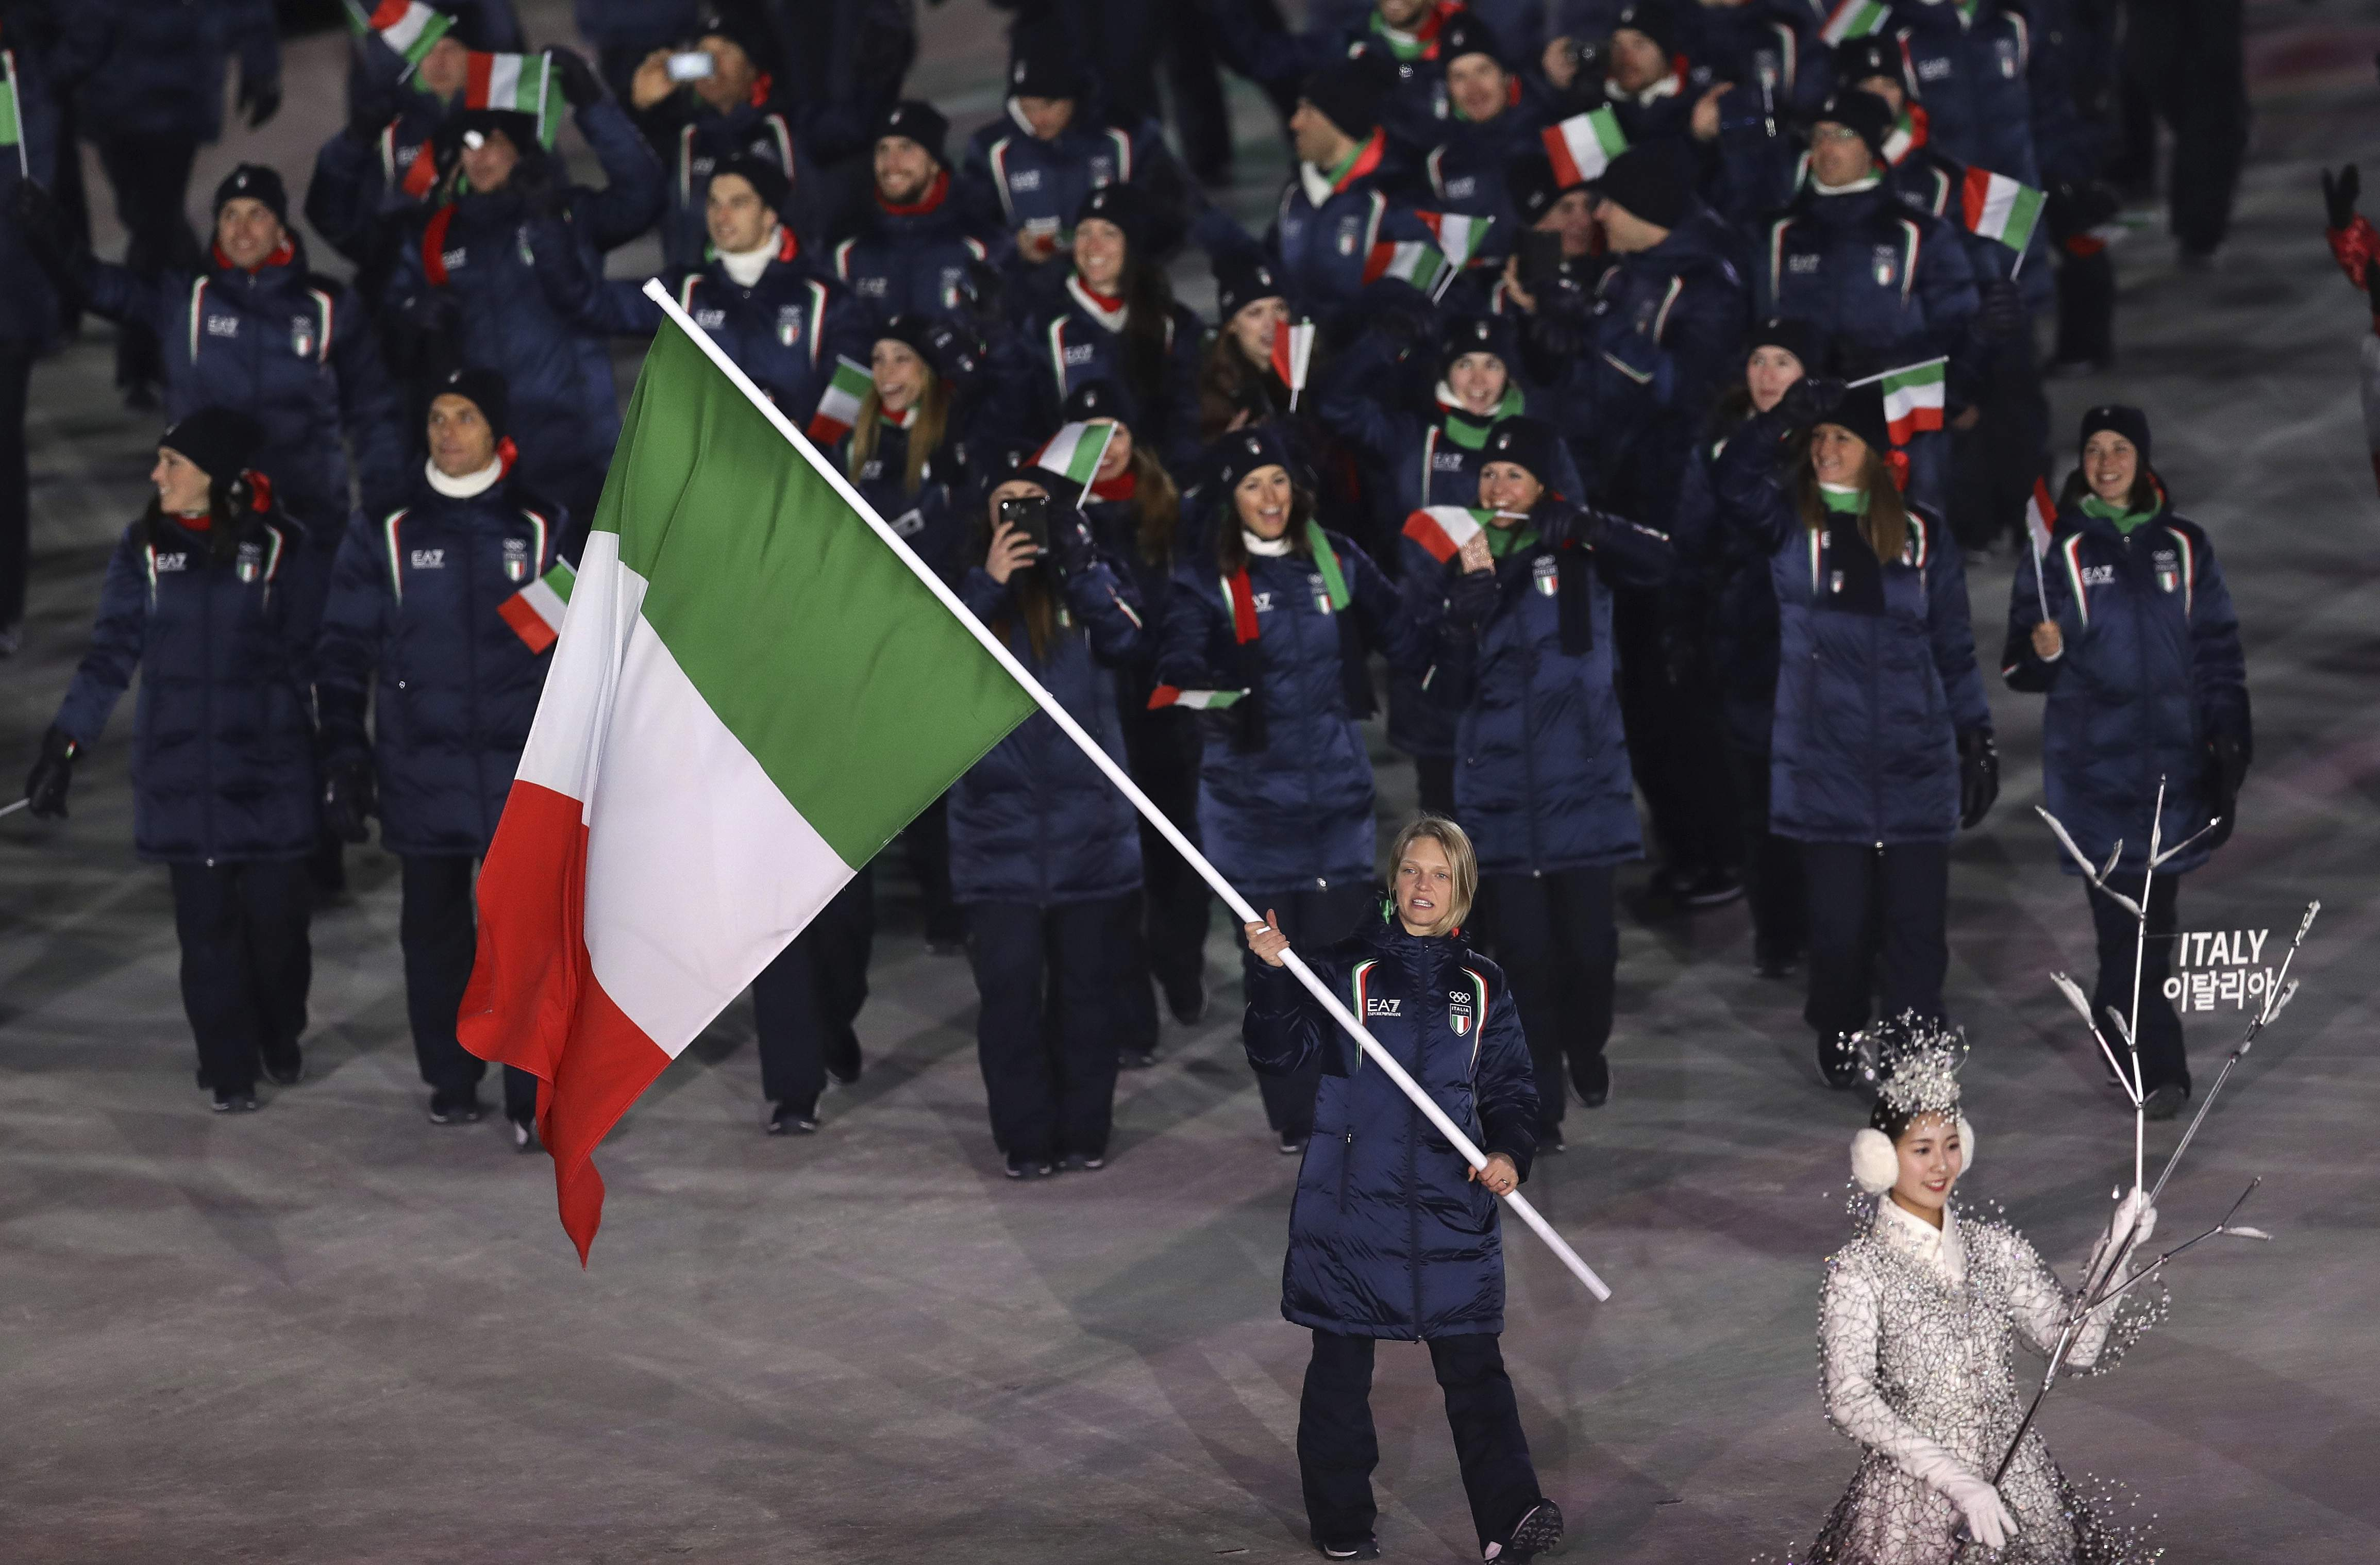 Arianna Fontana carries the flag of Italy during the opening ceremony of the 2018 Winter Olympics in Pyeongchang, South Korea, Friday, Feb. 9, 2018. (AP Photo/Michael Sohn)